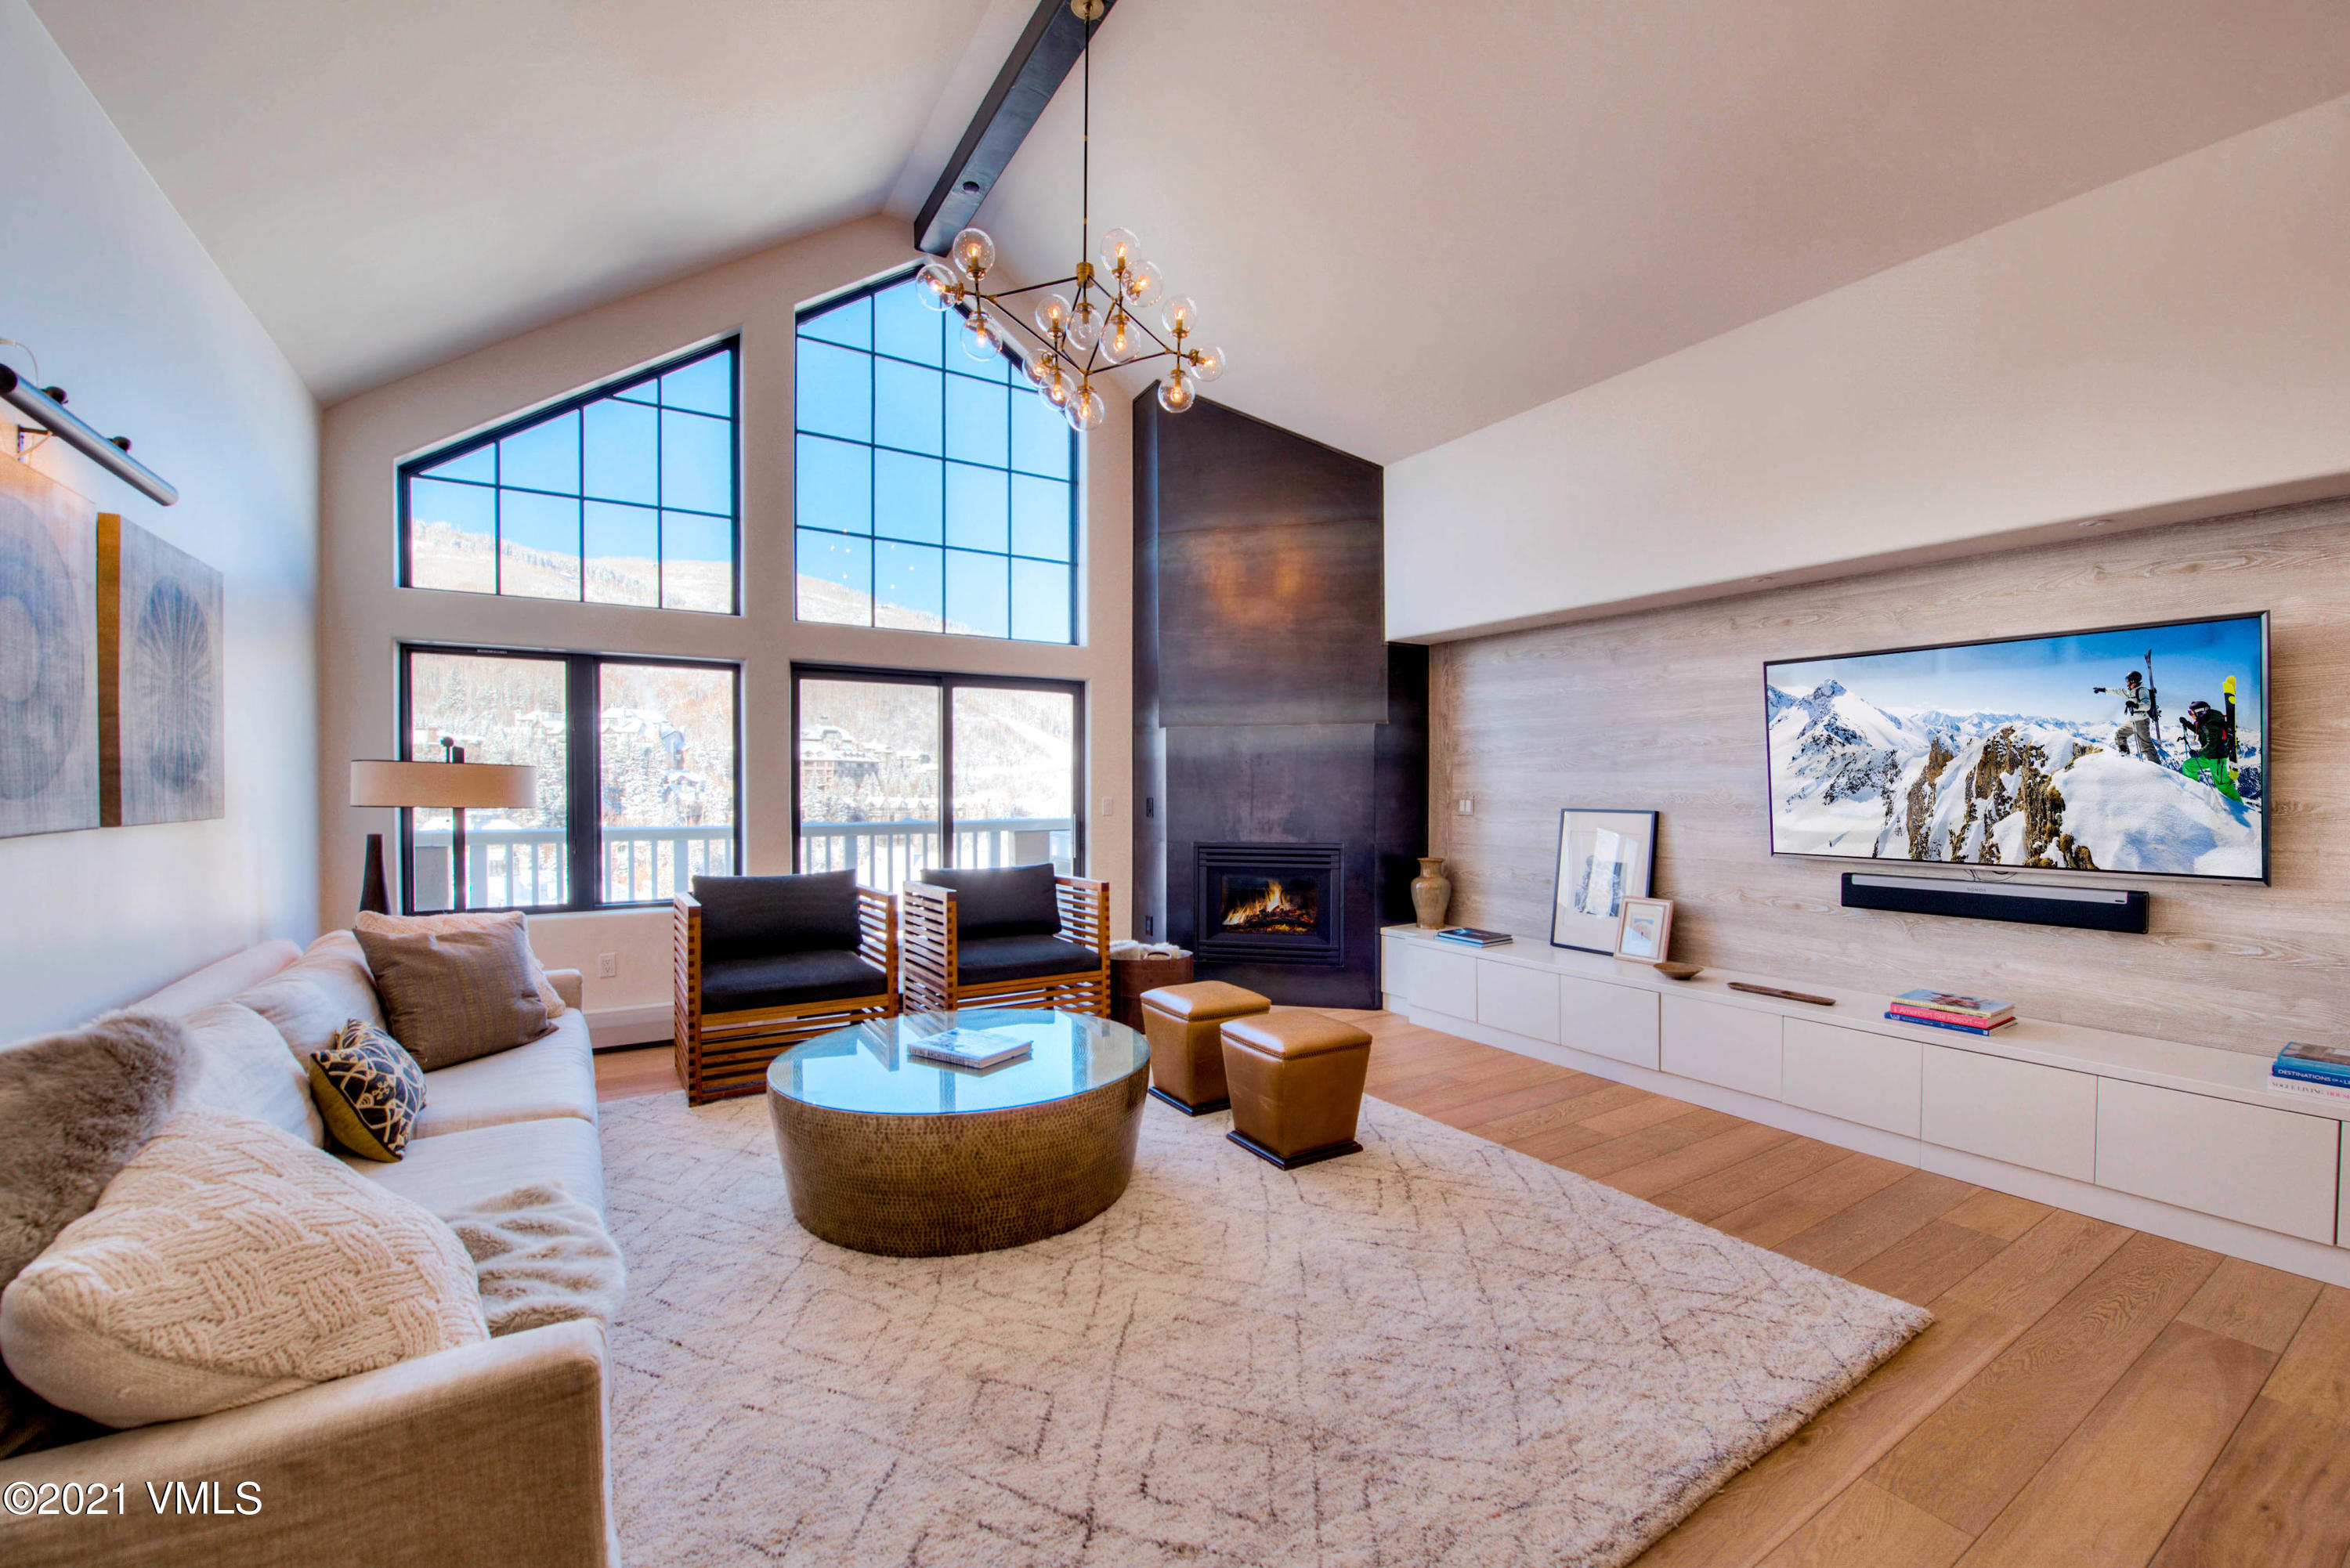 Luxury Beaver Creek penthouse has floor to ceiling windows capturing expansive mountain and ski slope views.  Offered completely turn key including designer furnishings, artwork, accessories, linens, and kitchenware.  Beautiful remodel with high end finishes throughout. Located in the heart of Beaver Creek Village and situated less than 200 yards to slopes and some of the finest skiing in North America.  Beaver Creek's children's ski school is world-renowned and the mountain offers up terrain that will encourage the novice and challenge the most experienced of skiers. Once you are checked into St. James Place forget your car as the Village has every amenity imaginable all within a very short walk through the European style village that includes an outdoor ice rink and the magnificent Vilar Center for the performing arts. Dining is also a short walk away with cuisine for everyone, from pizza and burgers to fine dining. World-class spa treatment is also a short walk away with two beautiful spas to choose from. Should you decide to relax at home after a day on the slopes the St. James Place offers several hot tubs, both indoors and out, a fitness room and of course you may very well choose to just sit by your fireplace and reflect on another perfect day in paradise.  Unique property where you will enjoy superior service and exceptional creature comforts in the heart of the Rockies.  HOA fee covers everything except electric averaging $30/month.